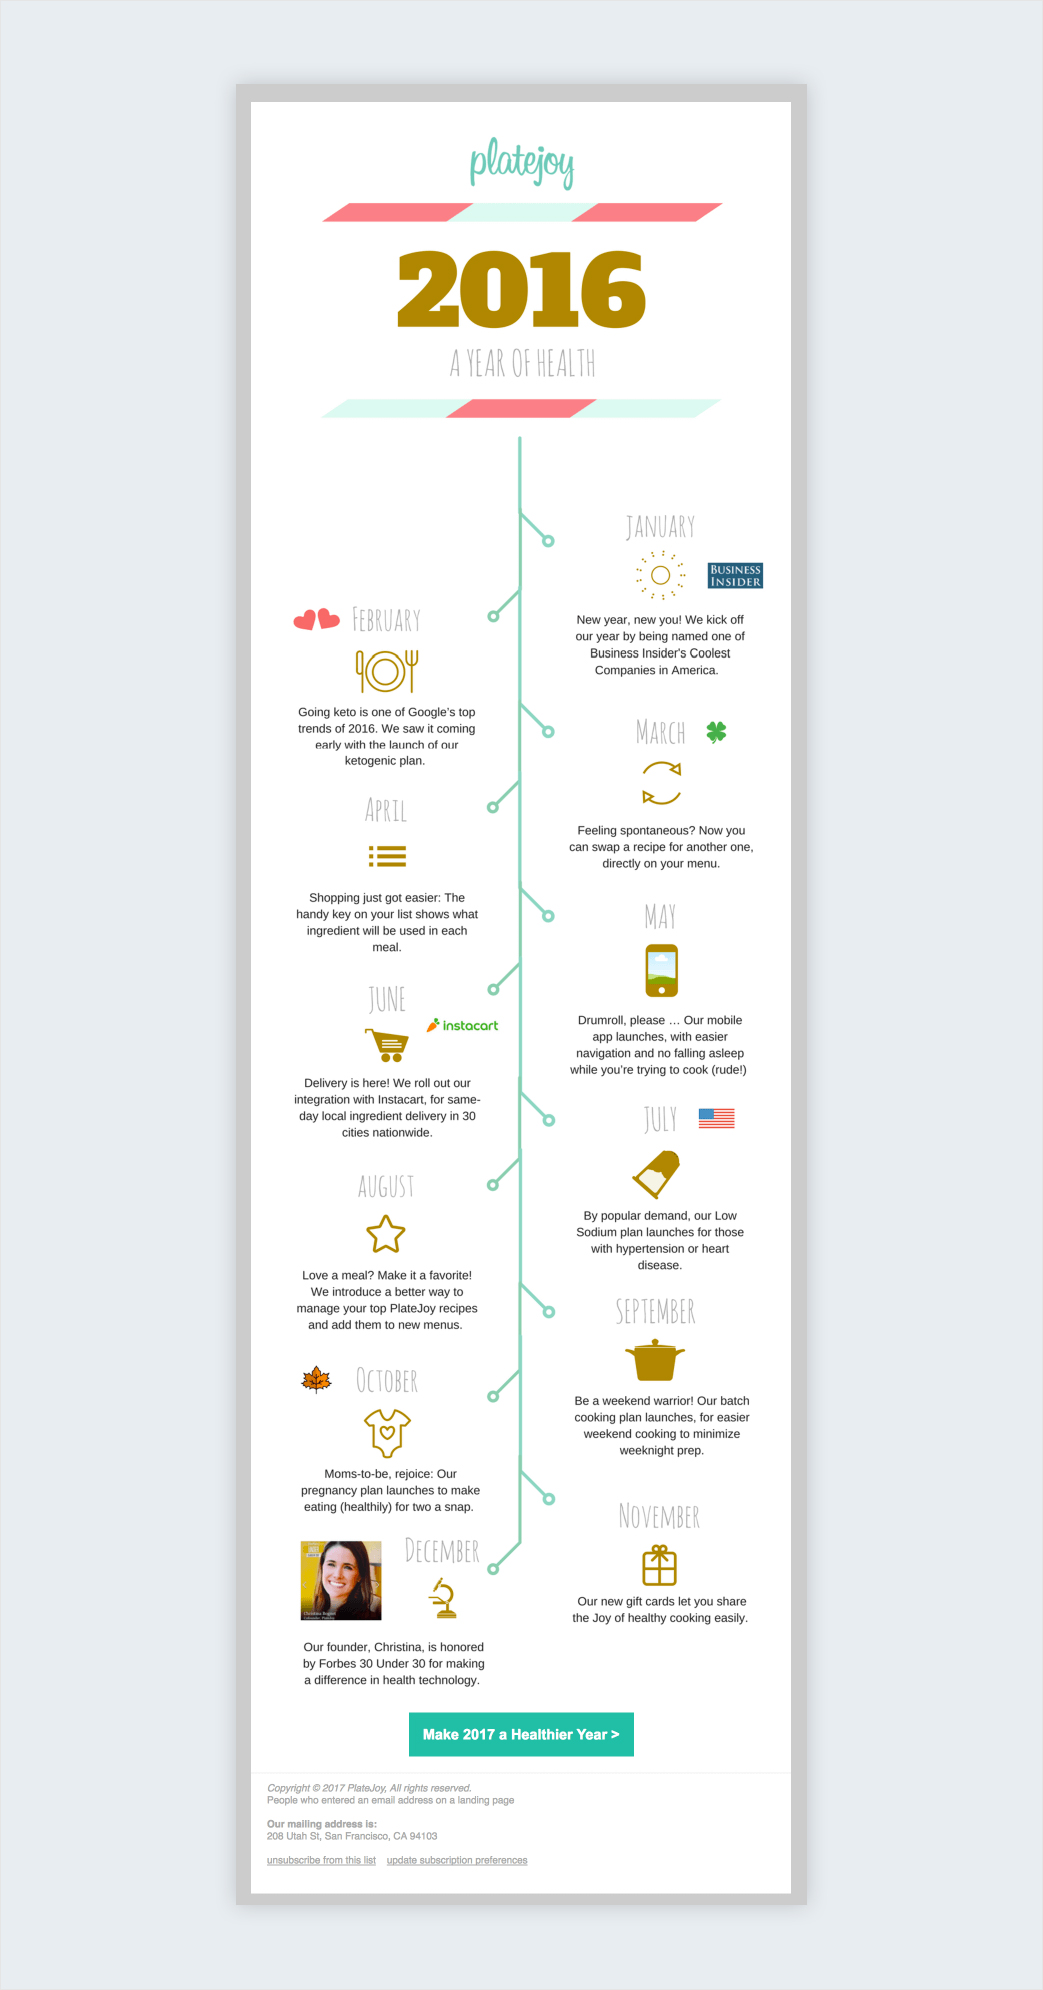 Inform-with-Infographics newsletter design tips